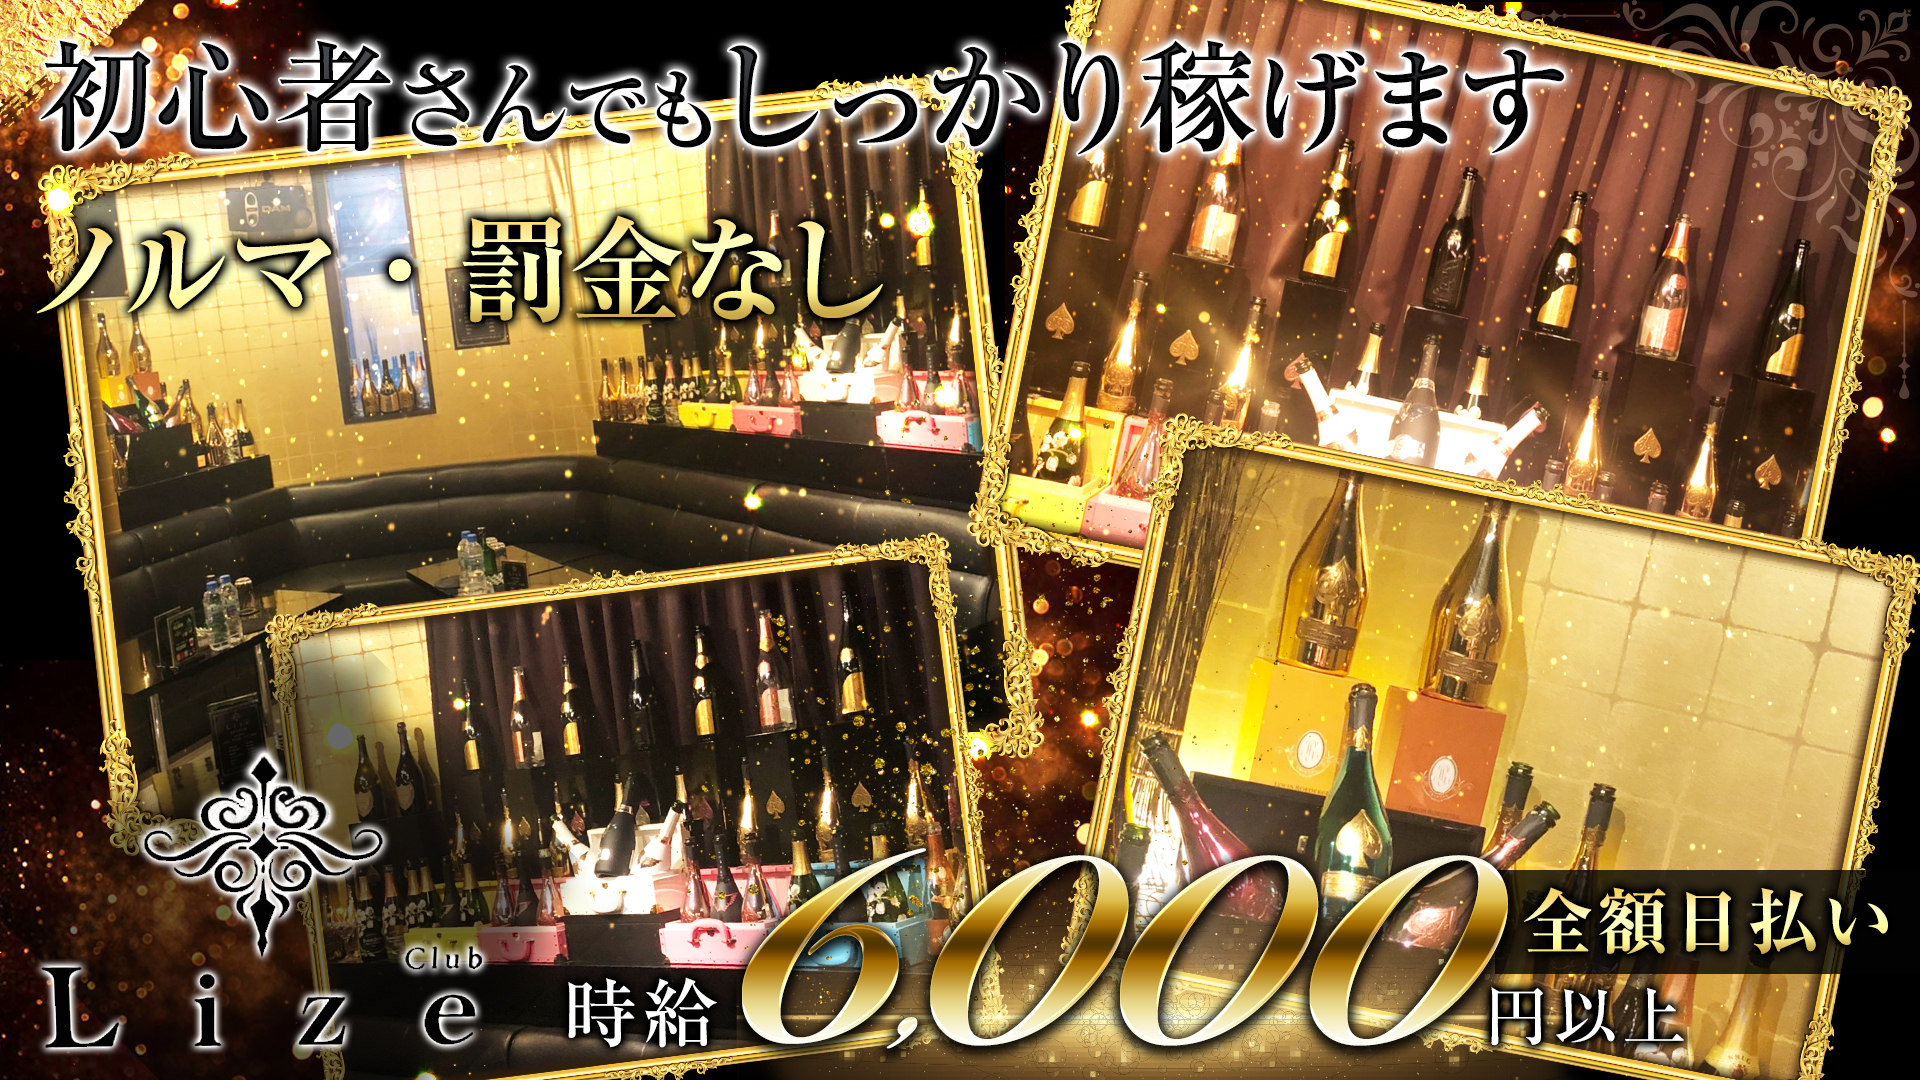 Club Lize[リゼ] 神田 キャバクラ TOP画像